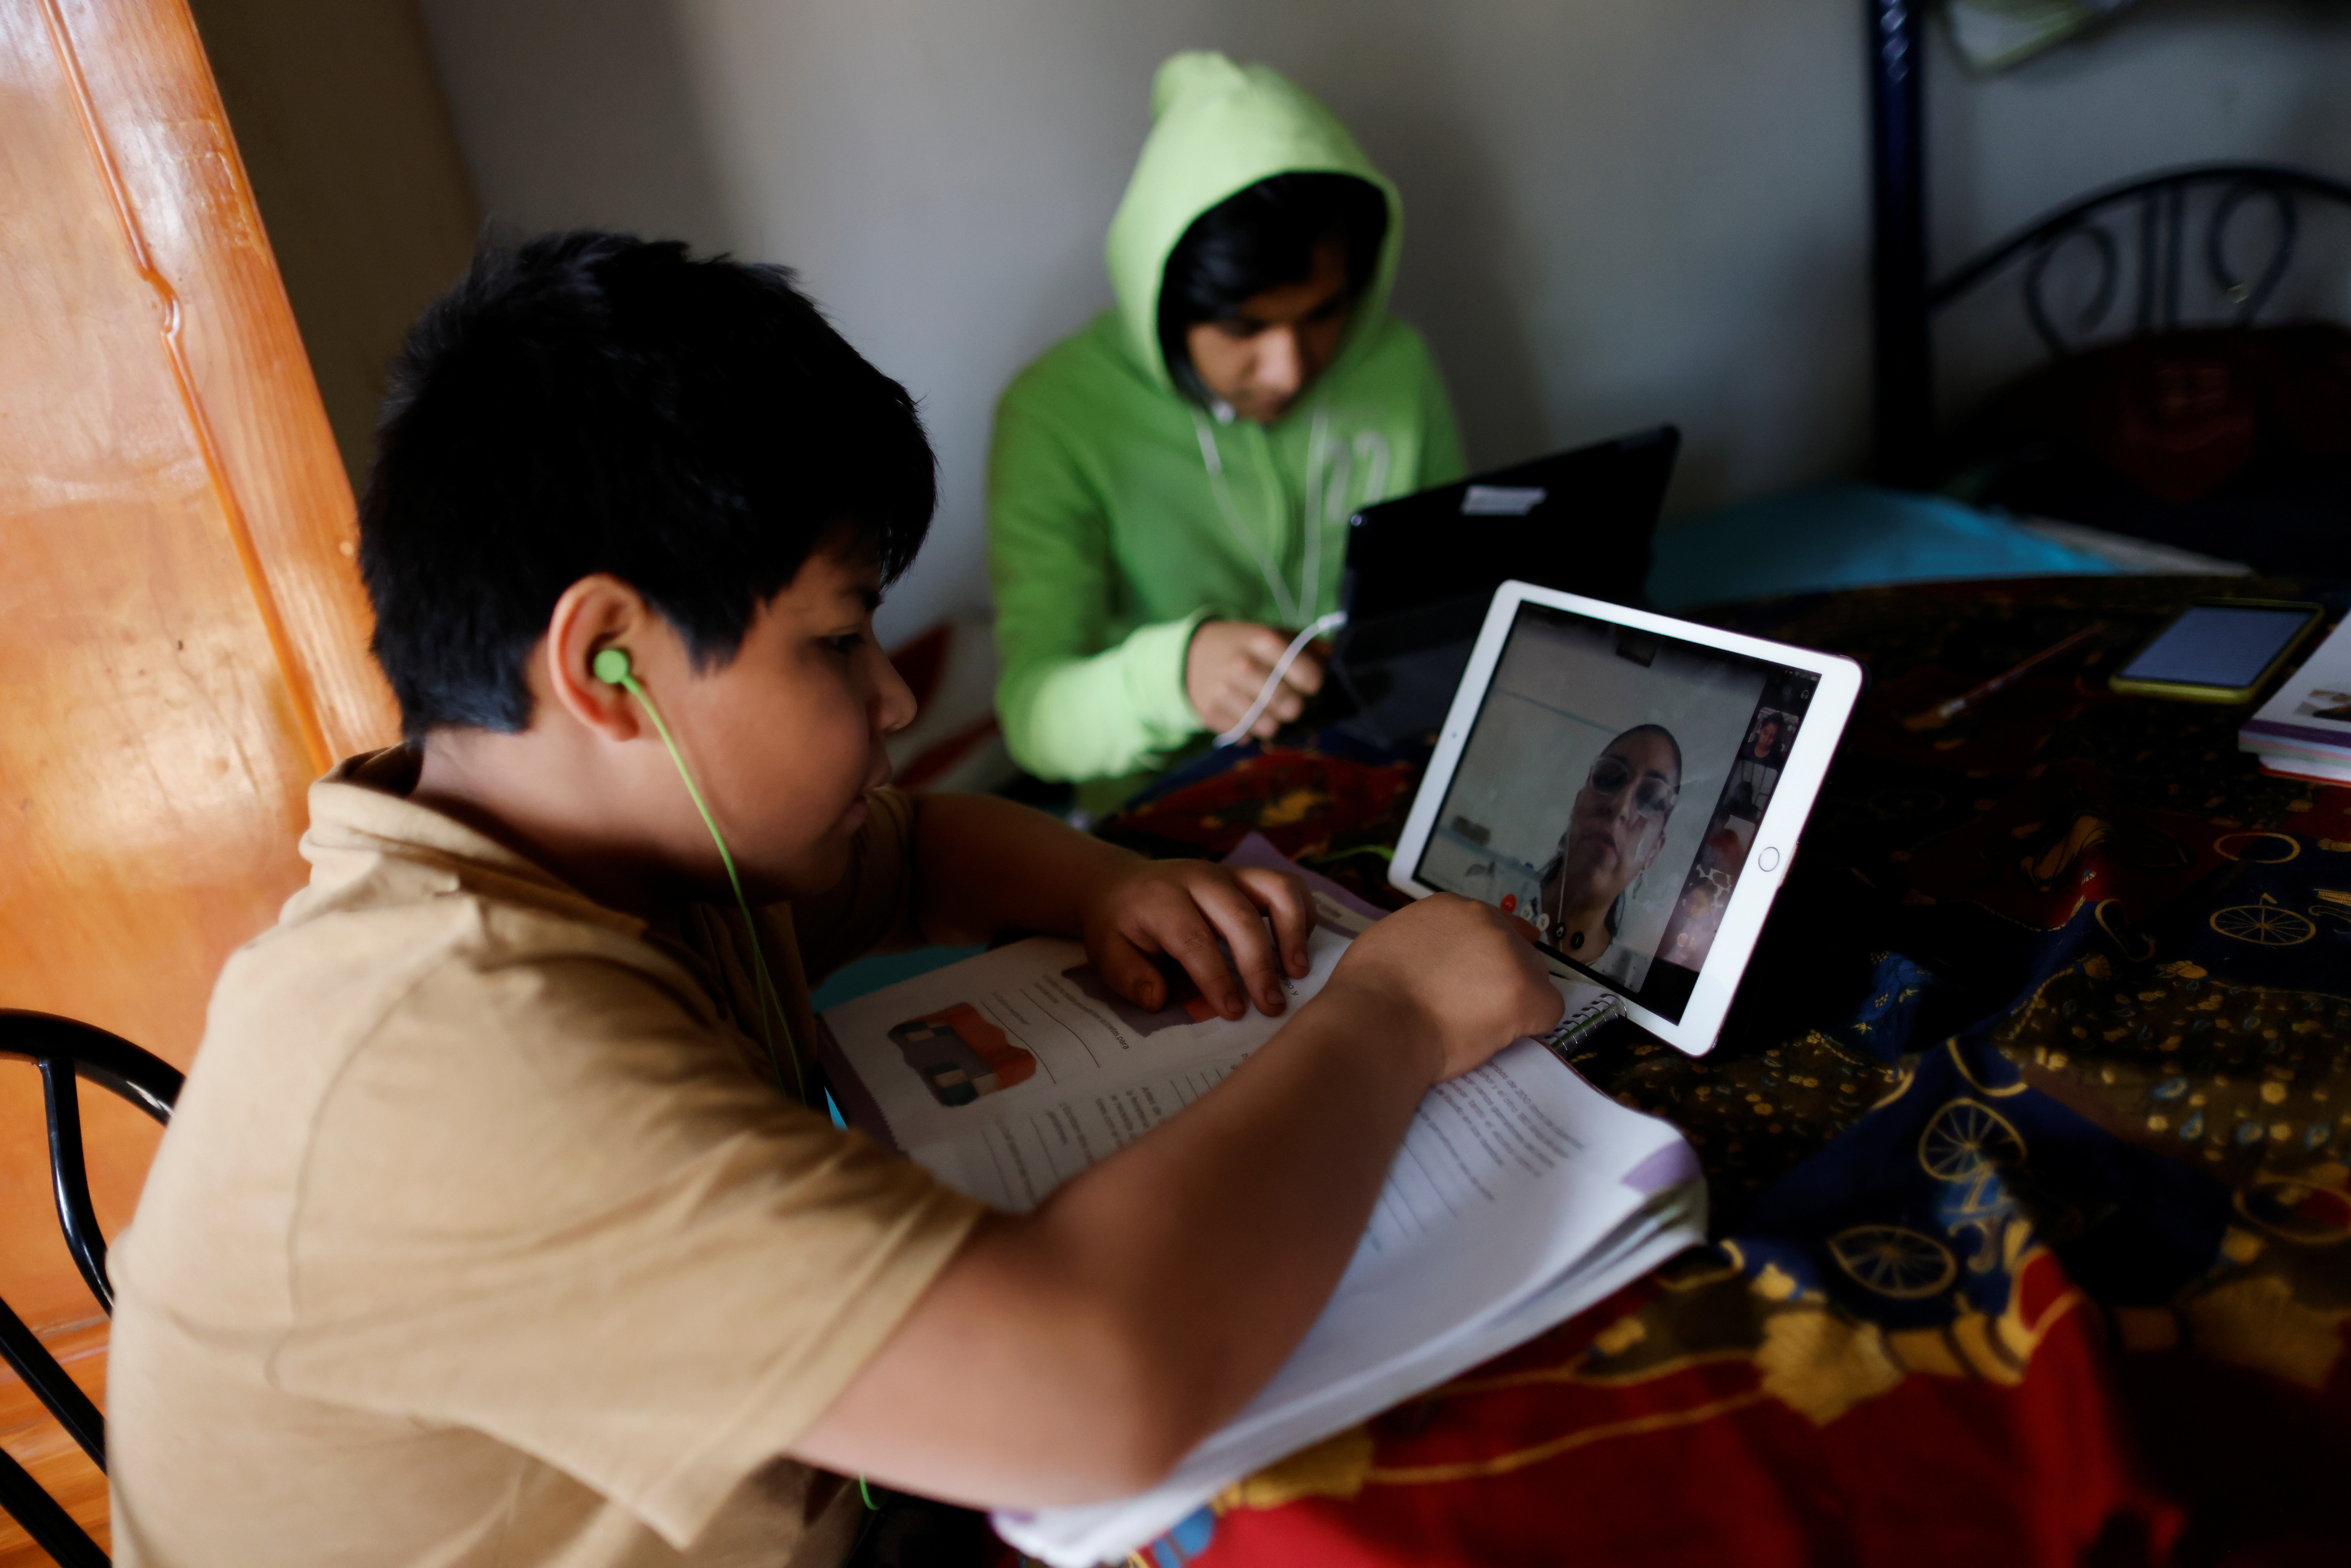 Max Gallardo, 11, listens to his teacher from a tablet during a lesson as his brother looks at his tablet, as Mexico marks one year anniversary of homeschooling after the schools closed due to the coronavirus disease (COVID-19) pandemic, in Mexico City, Mexico March 17, 2021. Picture taken March 17, 2021.REUTERS/Carlos Jasso - RC2IEM9JYSNA